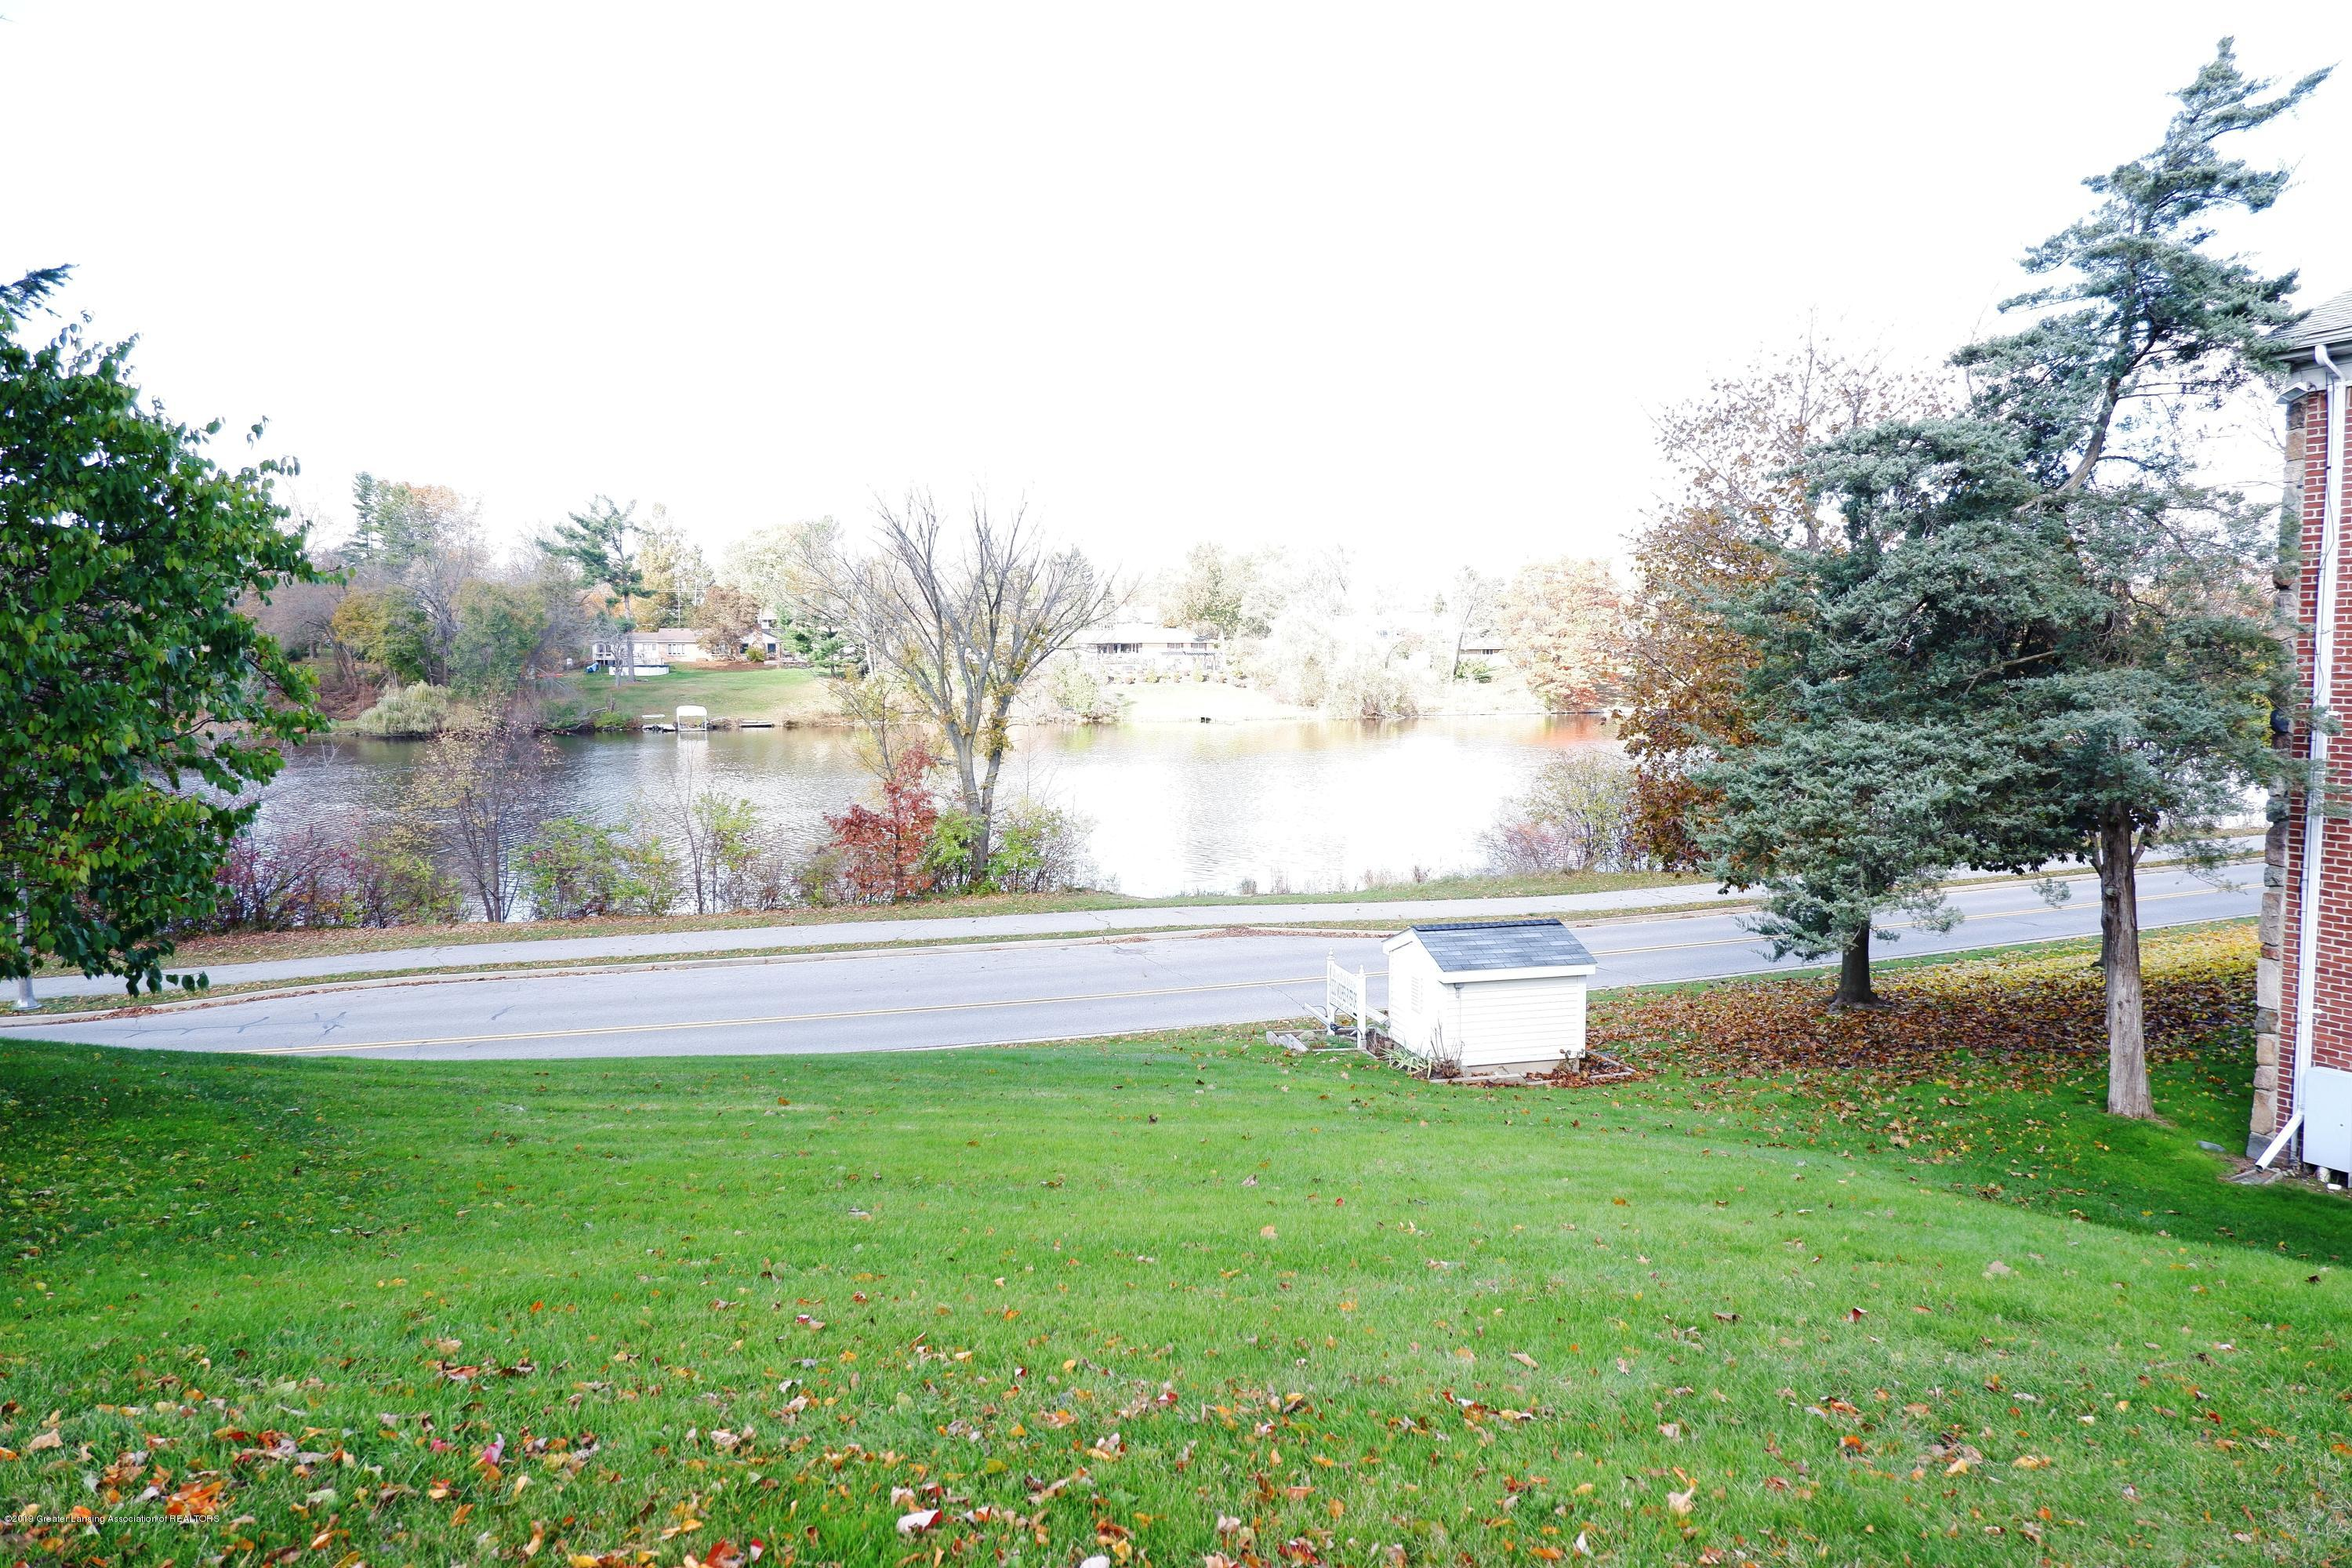 3333 Moores River Dr Apt 508 - River runs along Moores River Dr. - 27